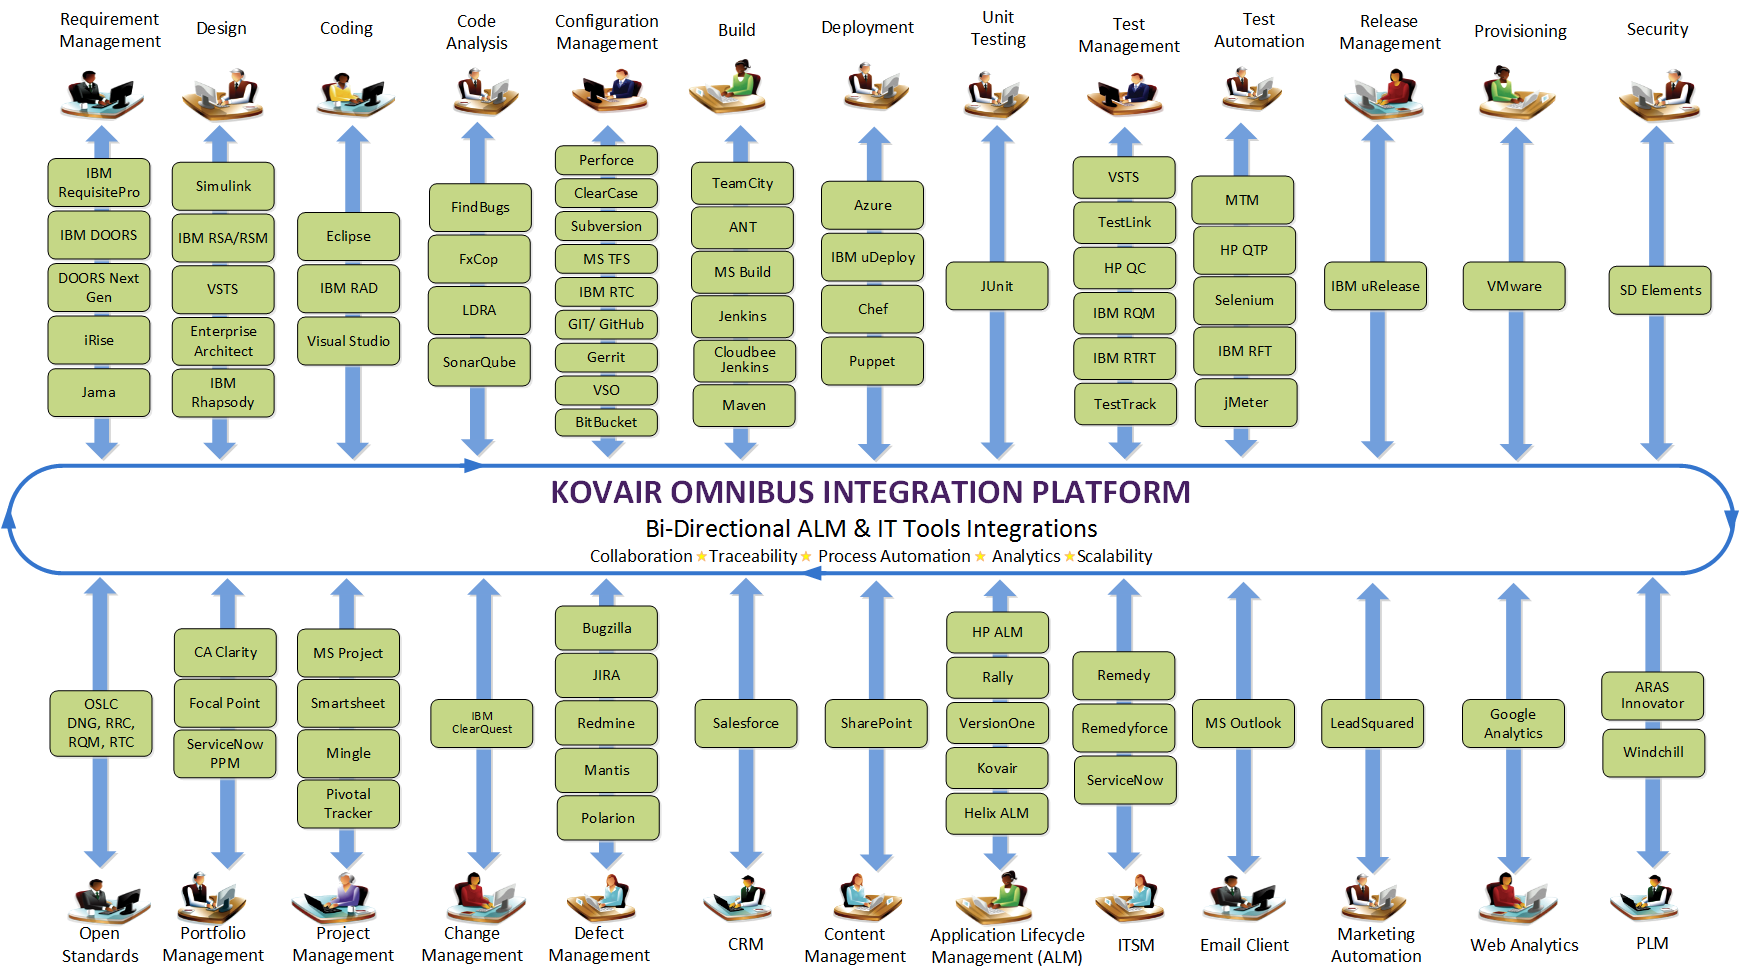 list of Integrations from Kovair